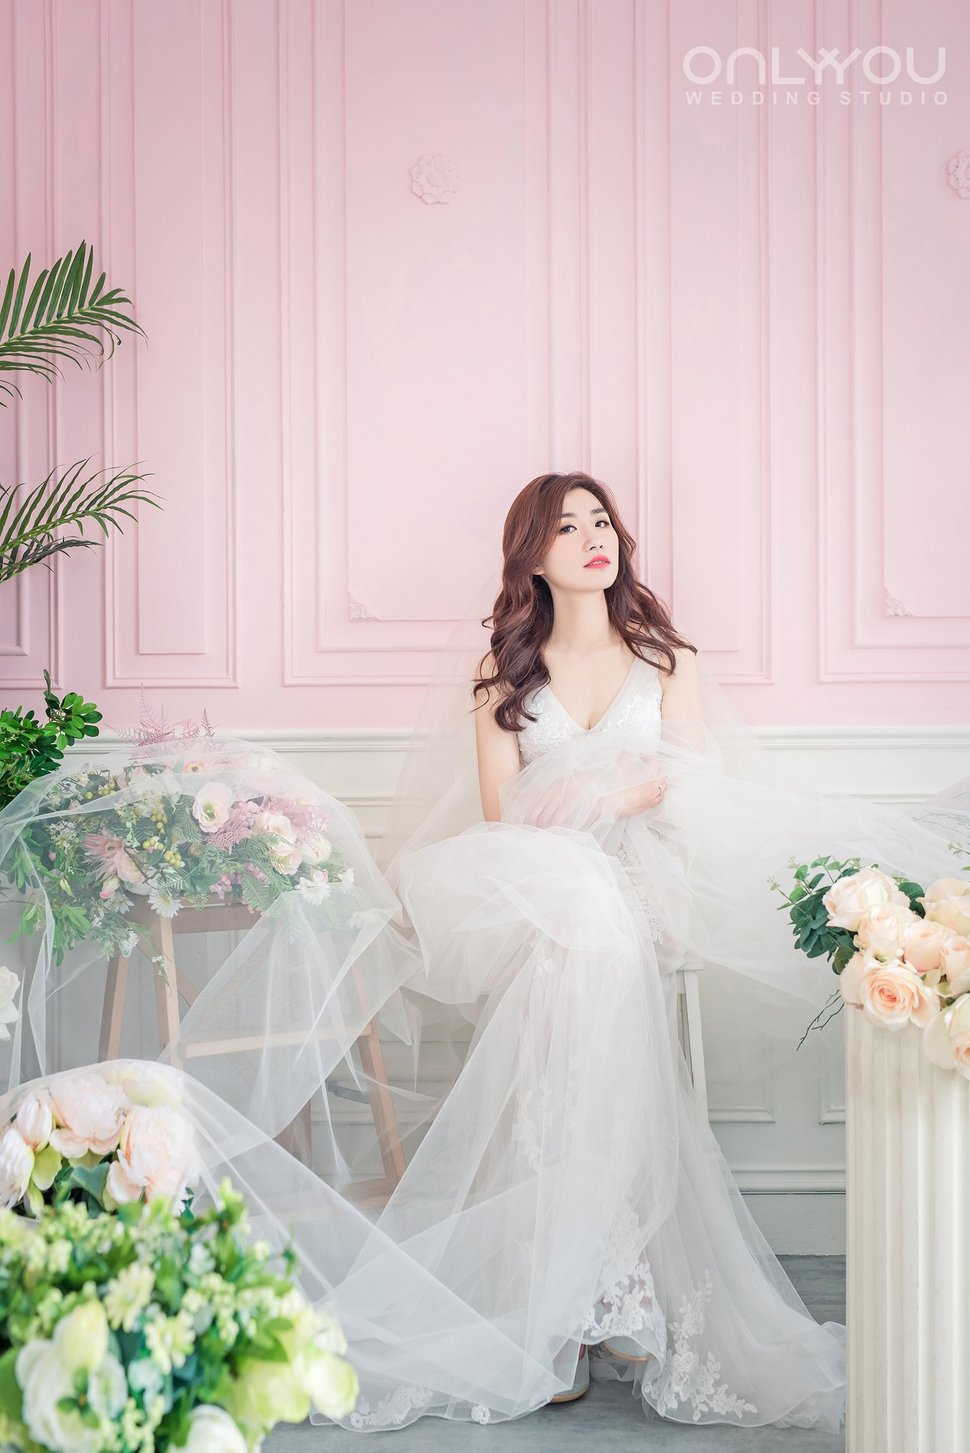 66469371_2256337407755226_5070931443866140672_o - ONLY YOU 唯你婚紗攝影《結婚吧》